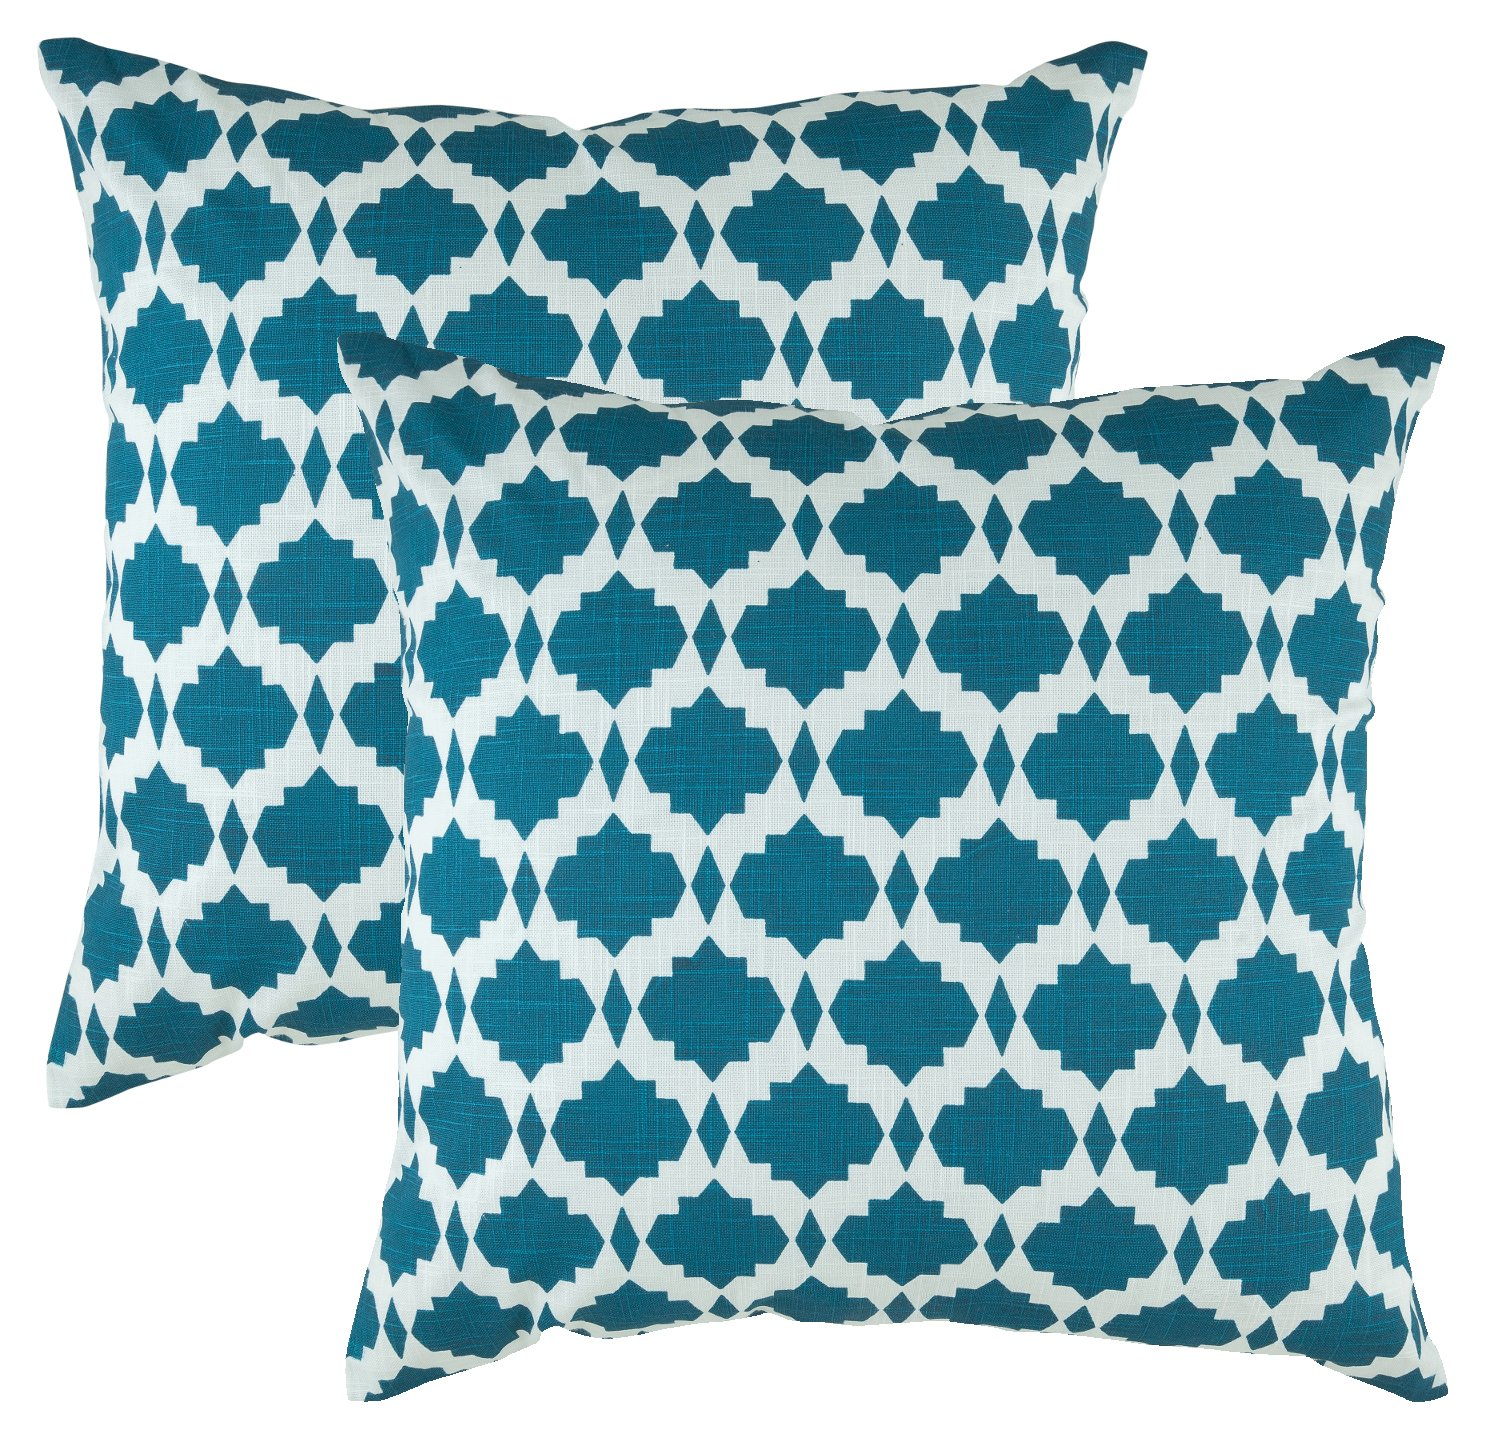 The Pillow Collection Camaxtli Ikat Black Down Filled Throw Pillow